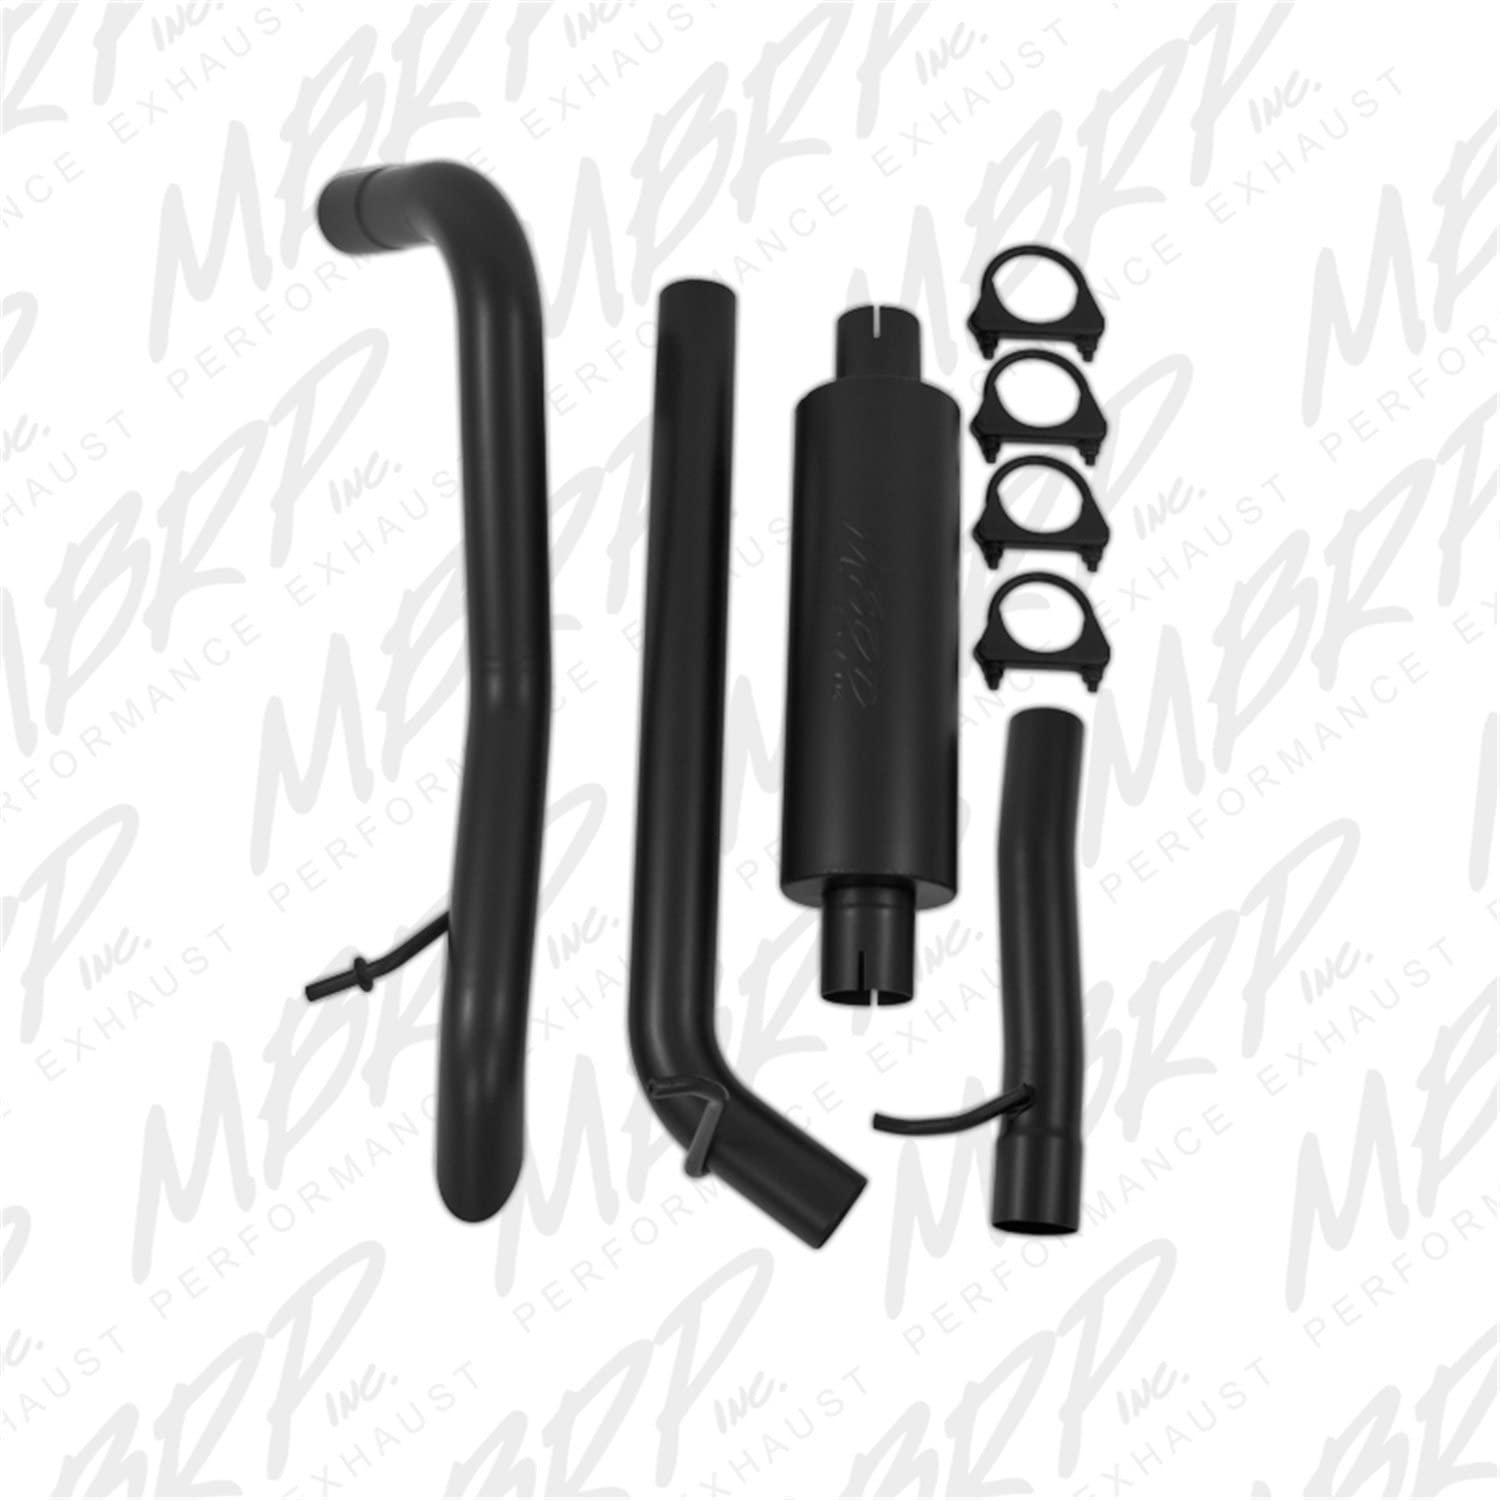 MBRP S5514AL Muffler before Axle Aluminized Off-Road Tail Pipe